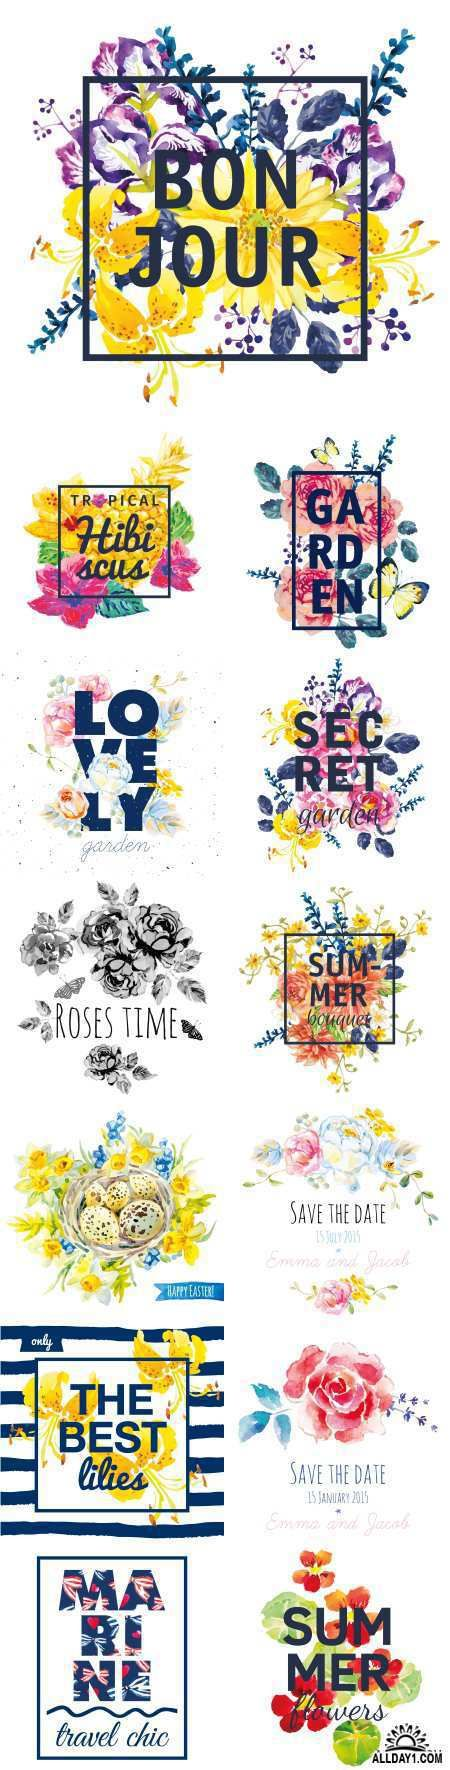 T shirt design 4 25x eps -  Watercolor Flowers Print For T Shirt Design Frame Artwork With